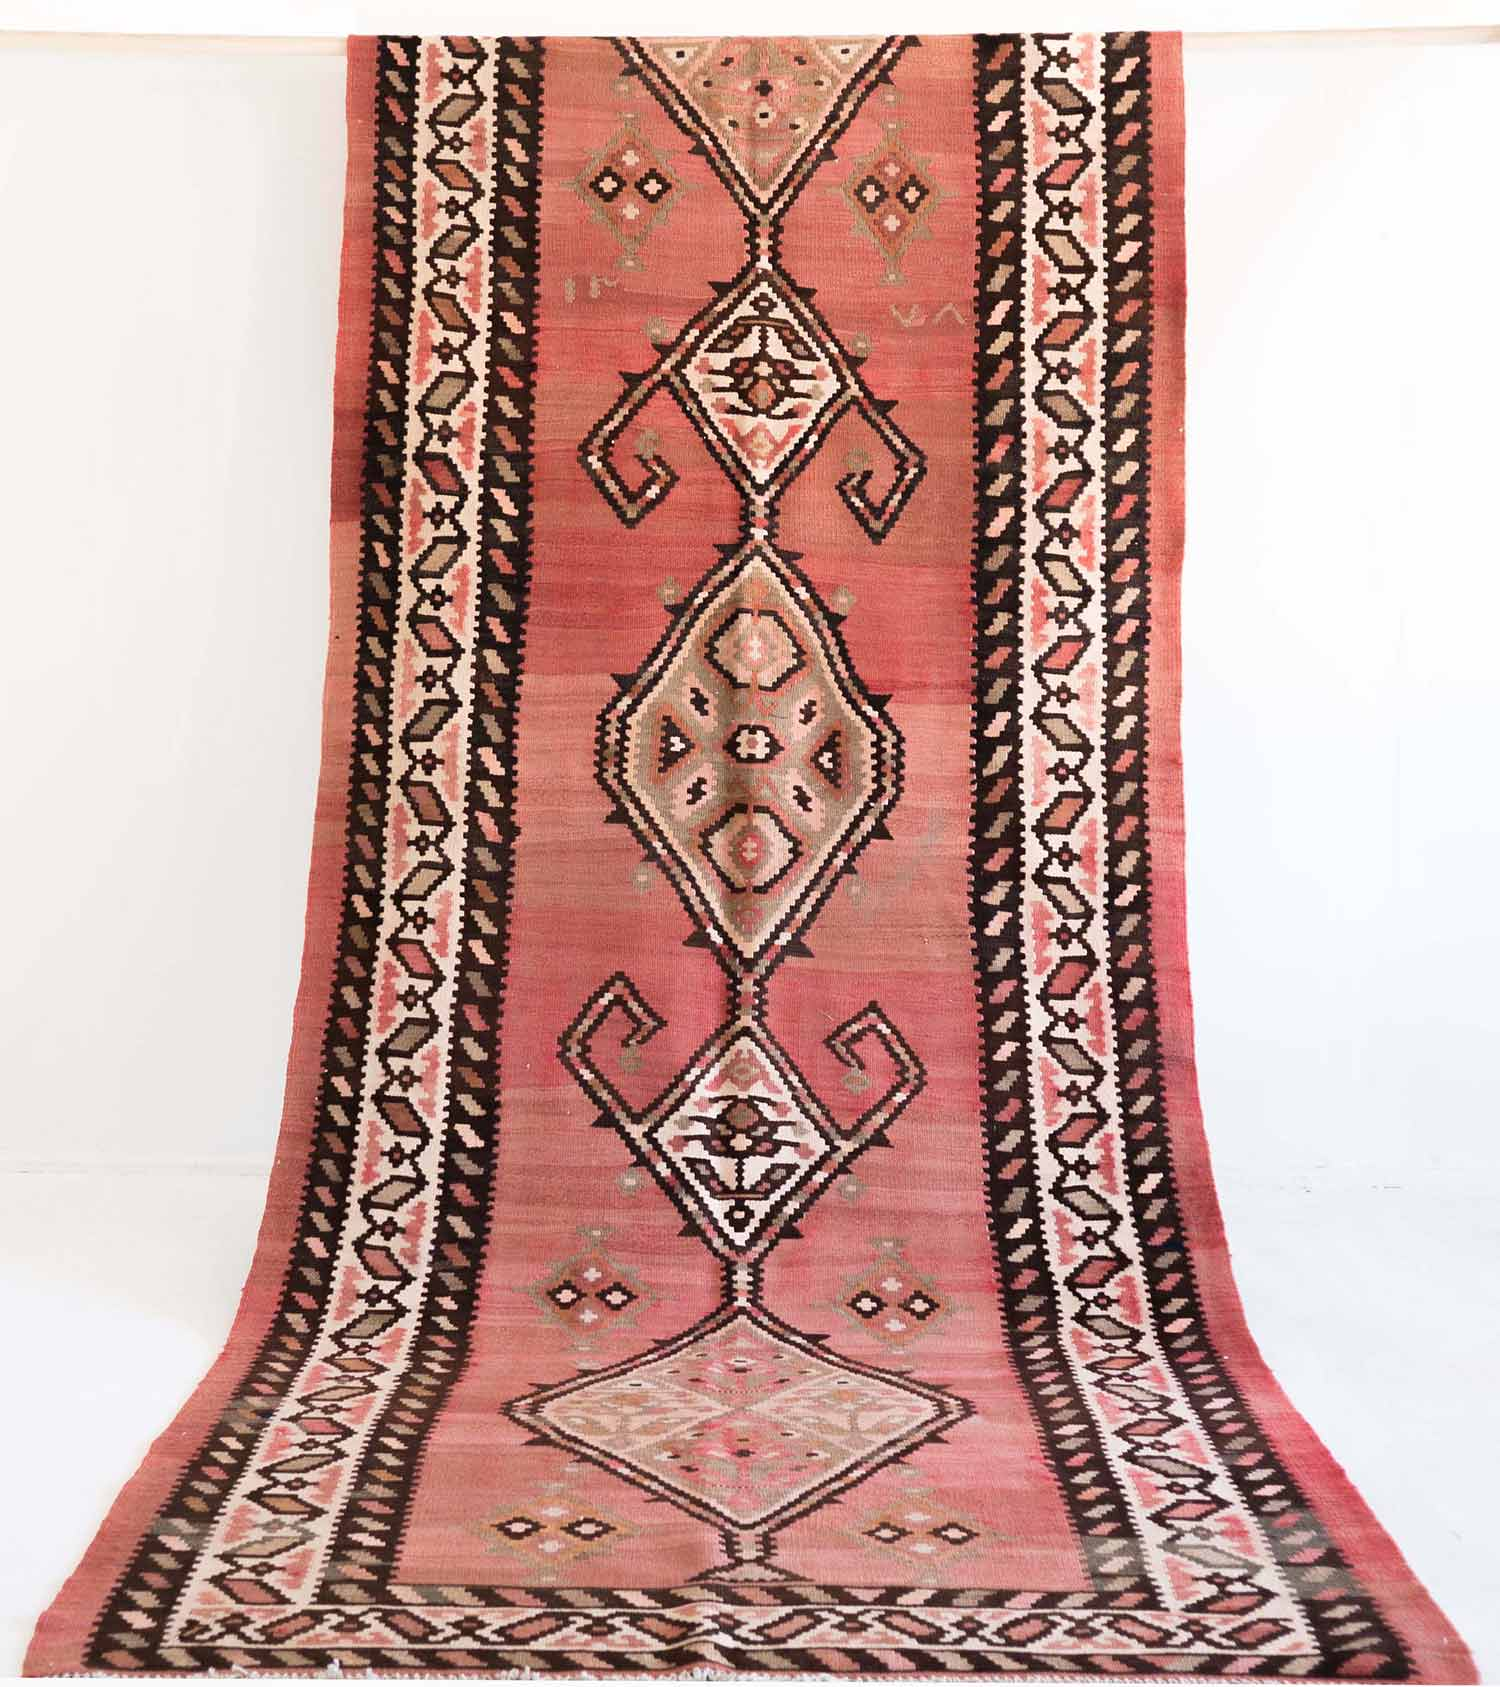 NO. 0146 /   PERSIAN KILIM (AZERBAIJAN) / 50 YEARS / 7 x 4 FT